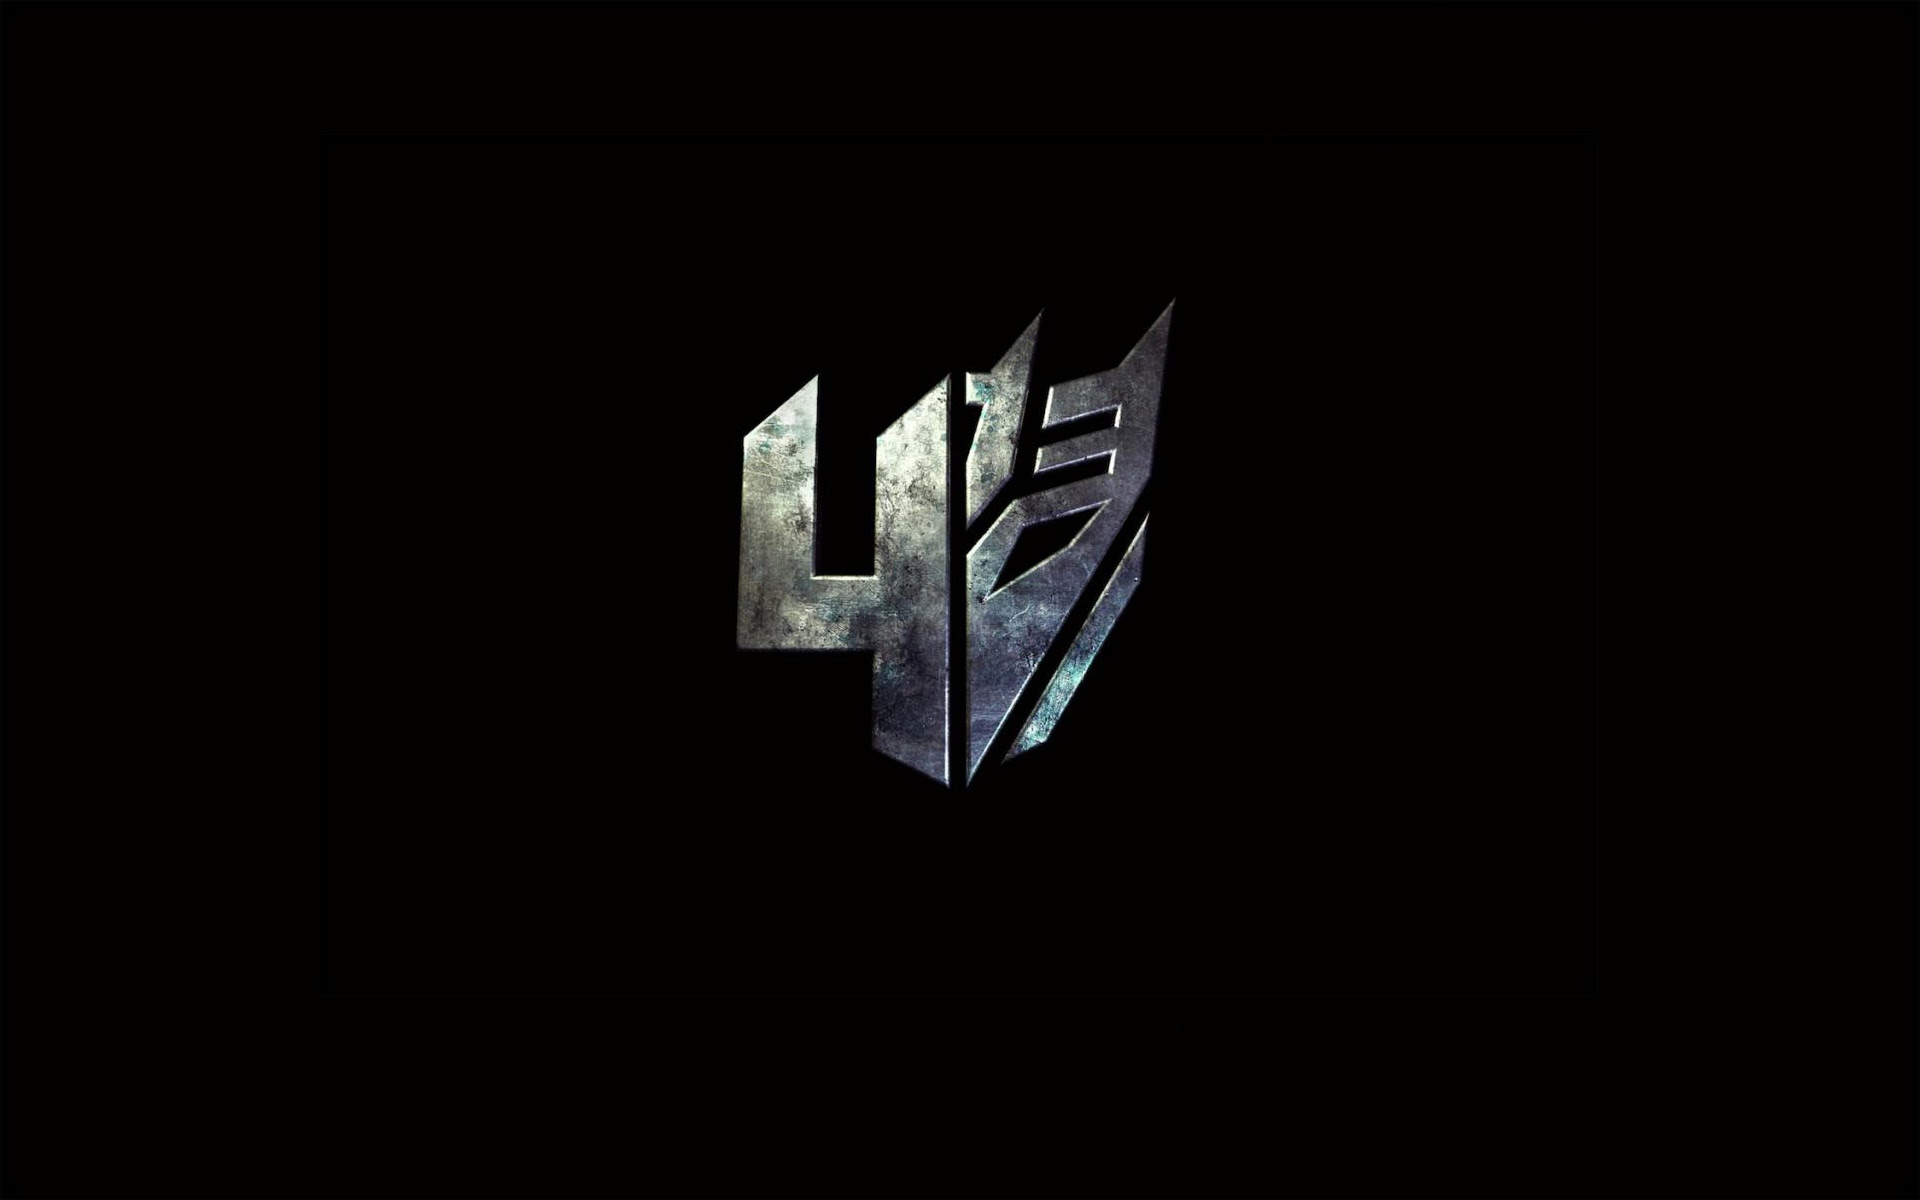 age of extinction autobot logo hd wallpaper 19201200 widescreen a879 1920x1200